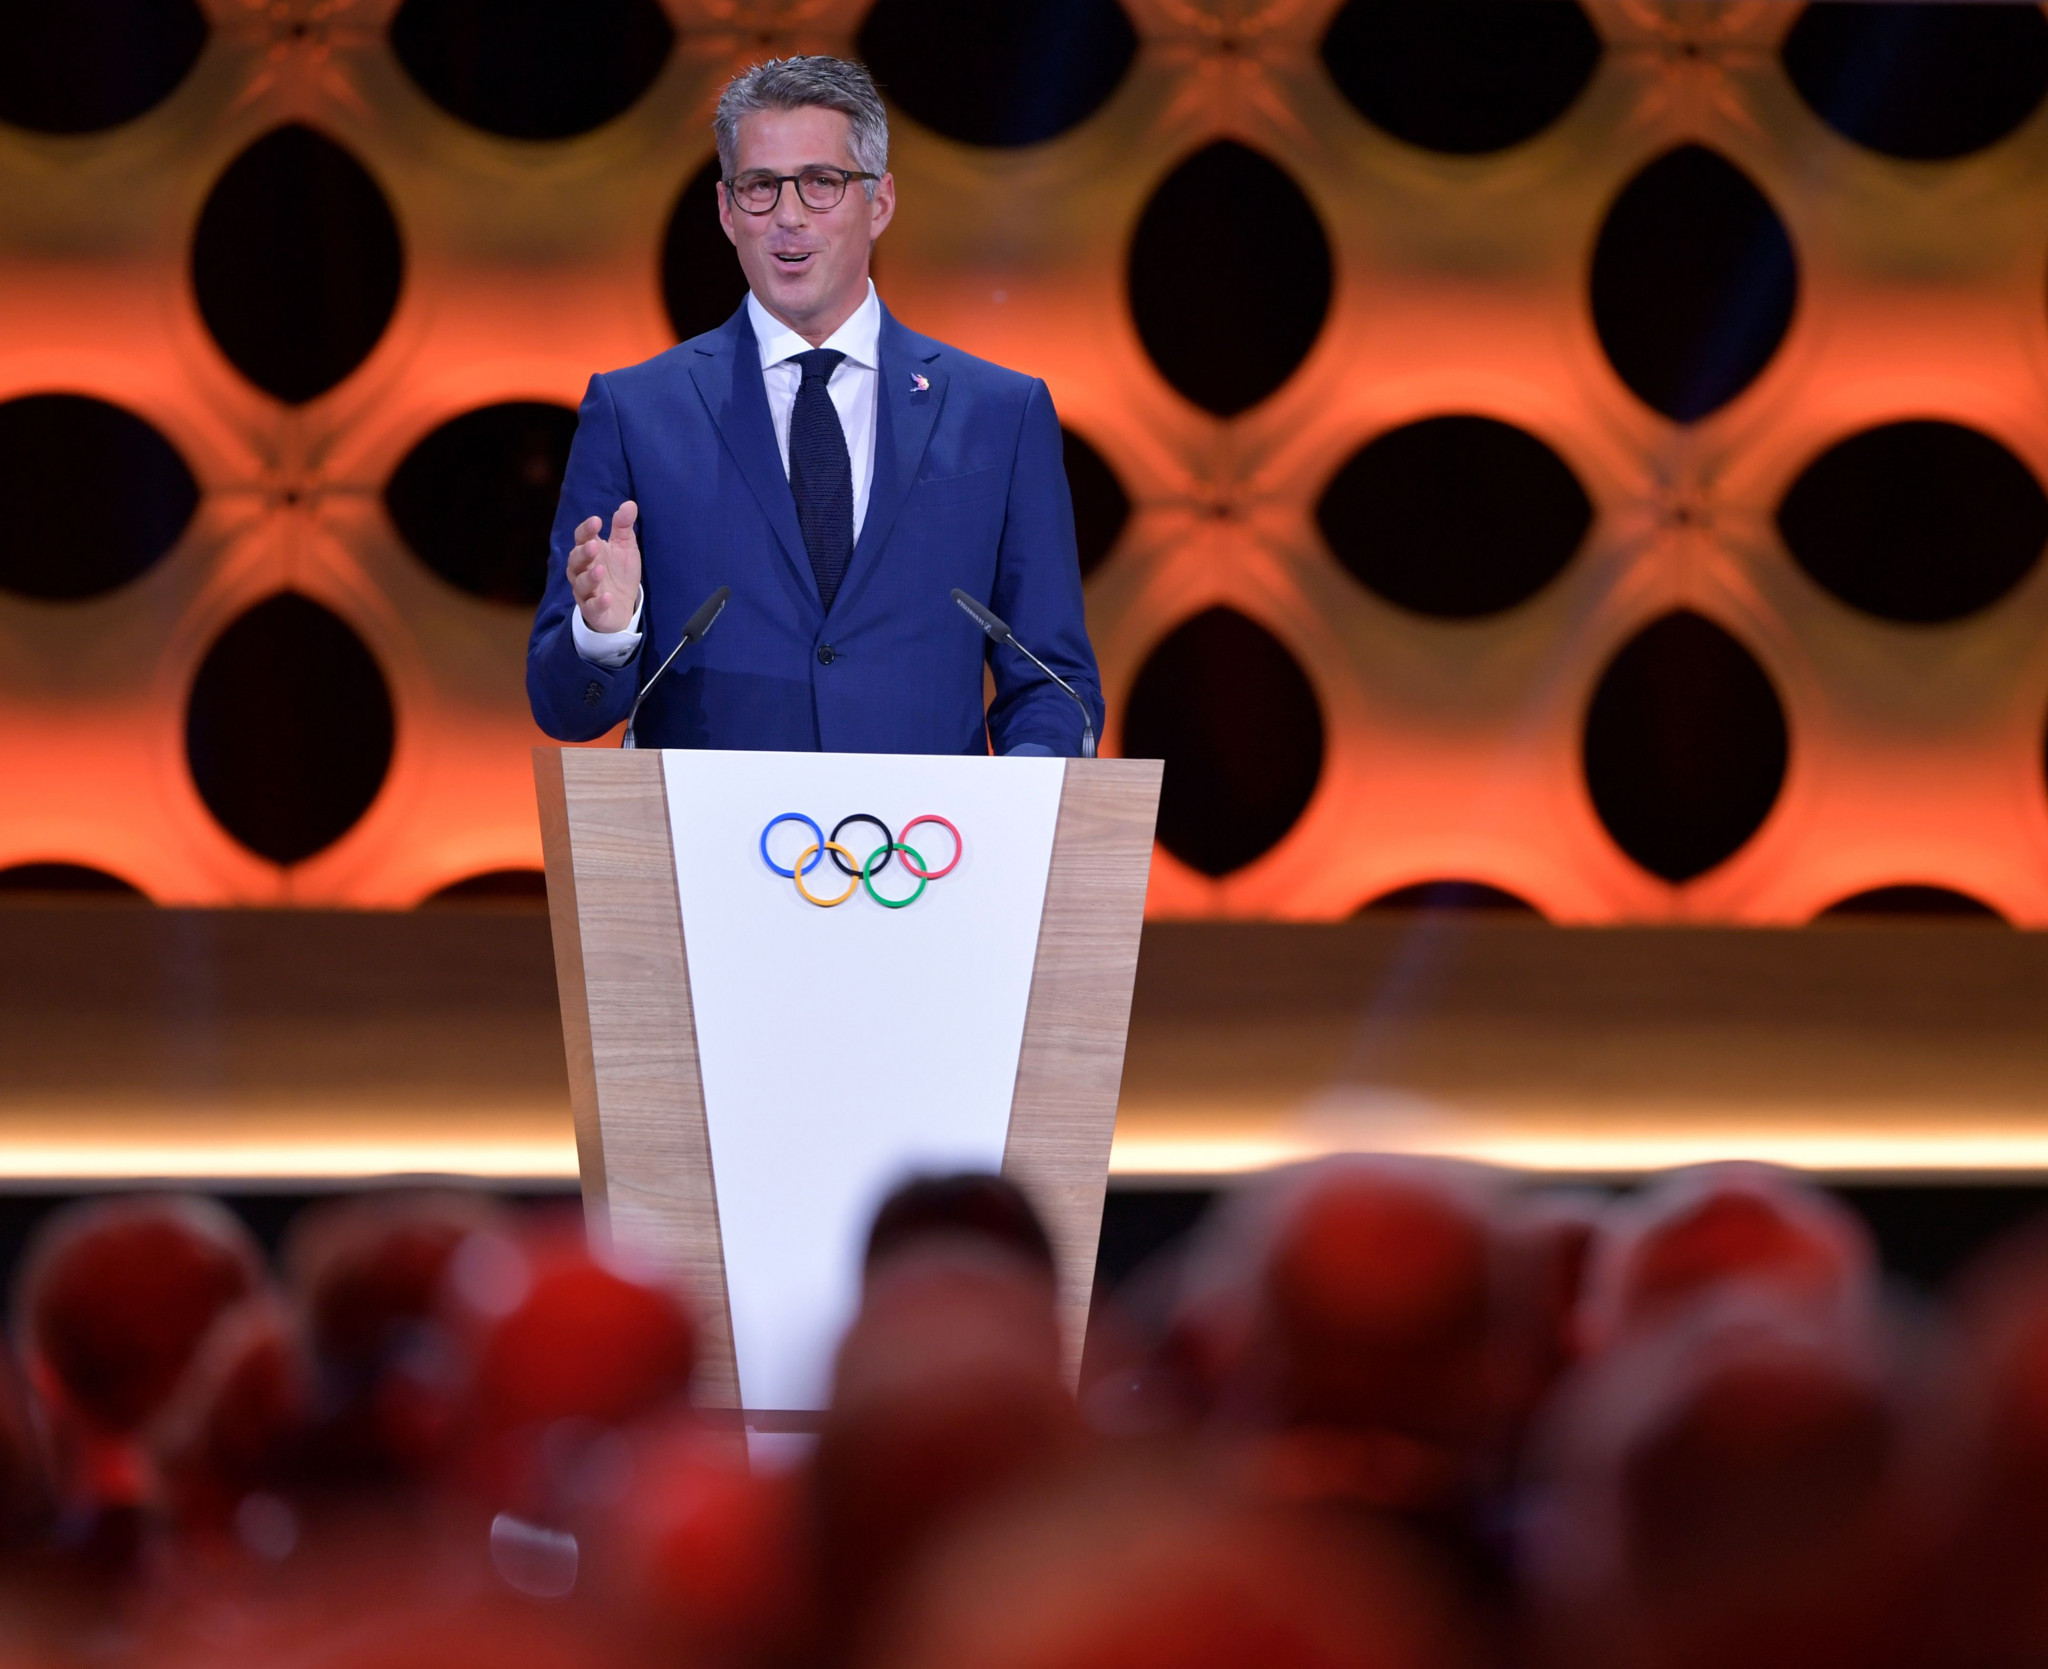 Los Angeles 2028 partners with NBCUniversal to collaborate on media and sponsorship opportunities